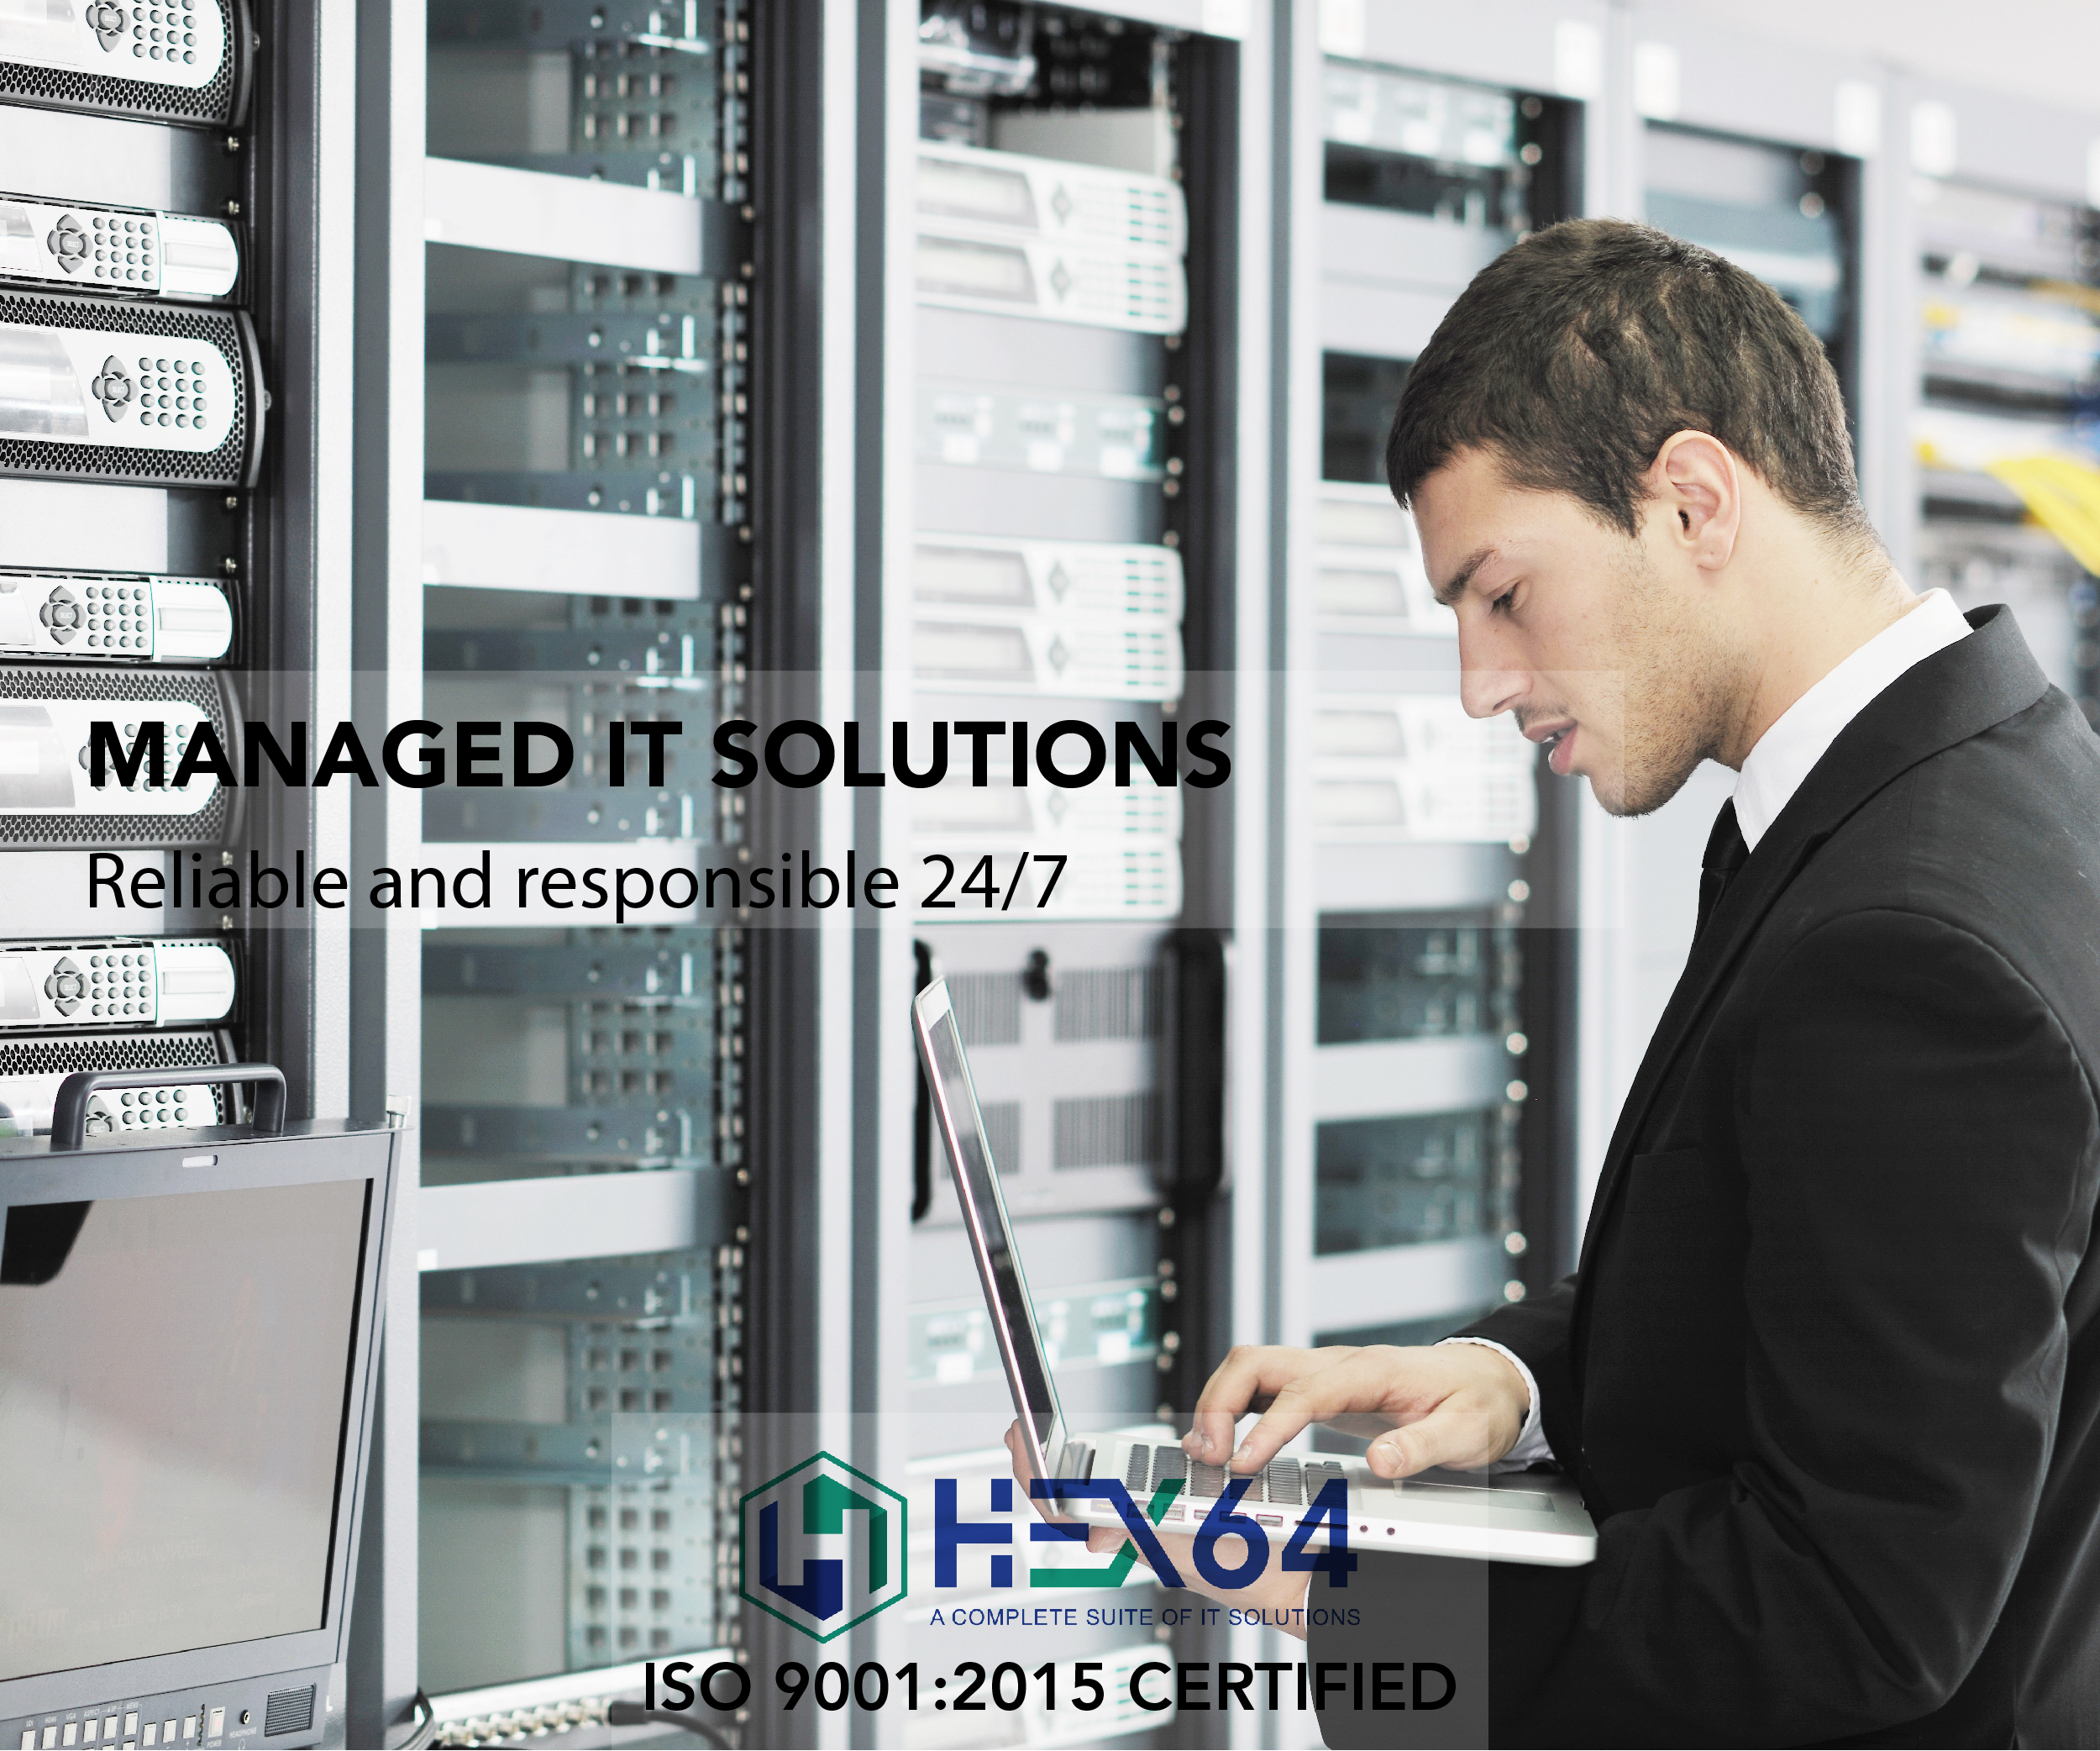 Managed IT Solutions